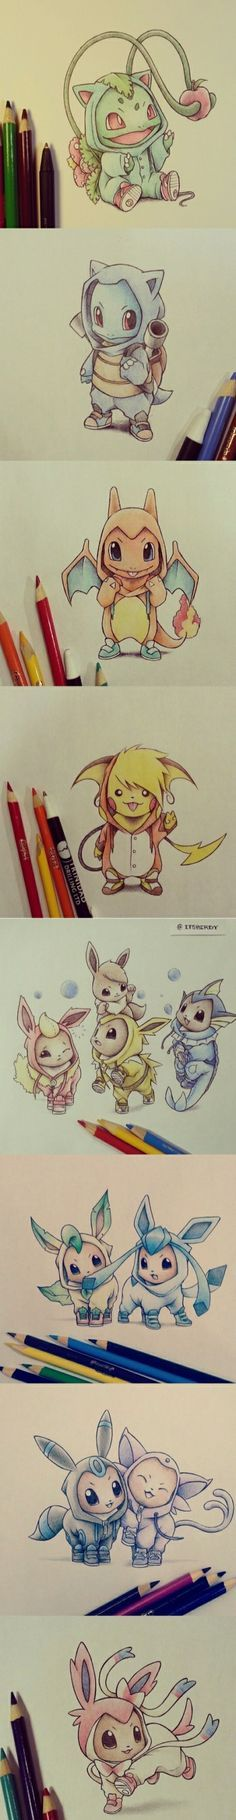 Pokemon in onesies of their evolutions! See source for artist! - that is freaking ingenious.